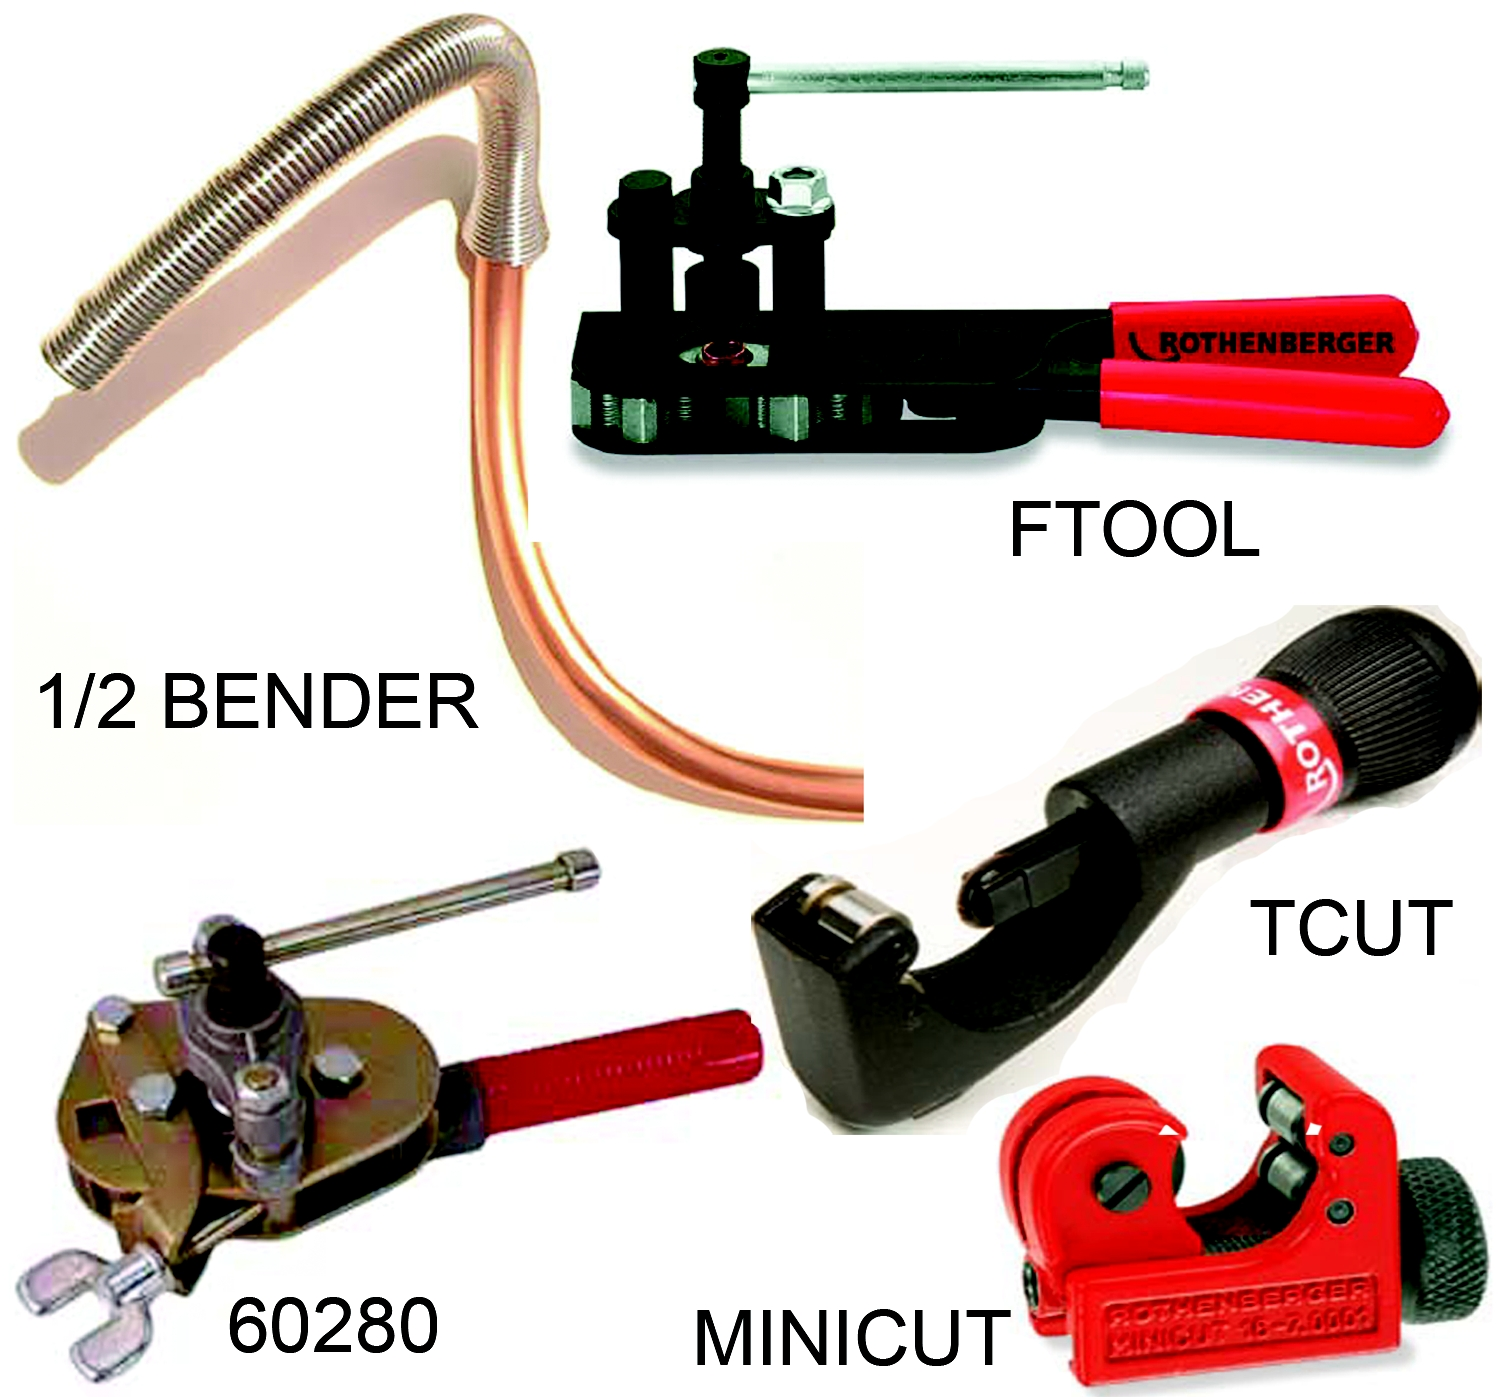 PicturesCategory/Copper Tube Cutters, Benders, And Flaring Tools.jpg